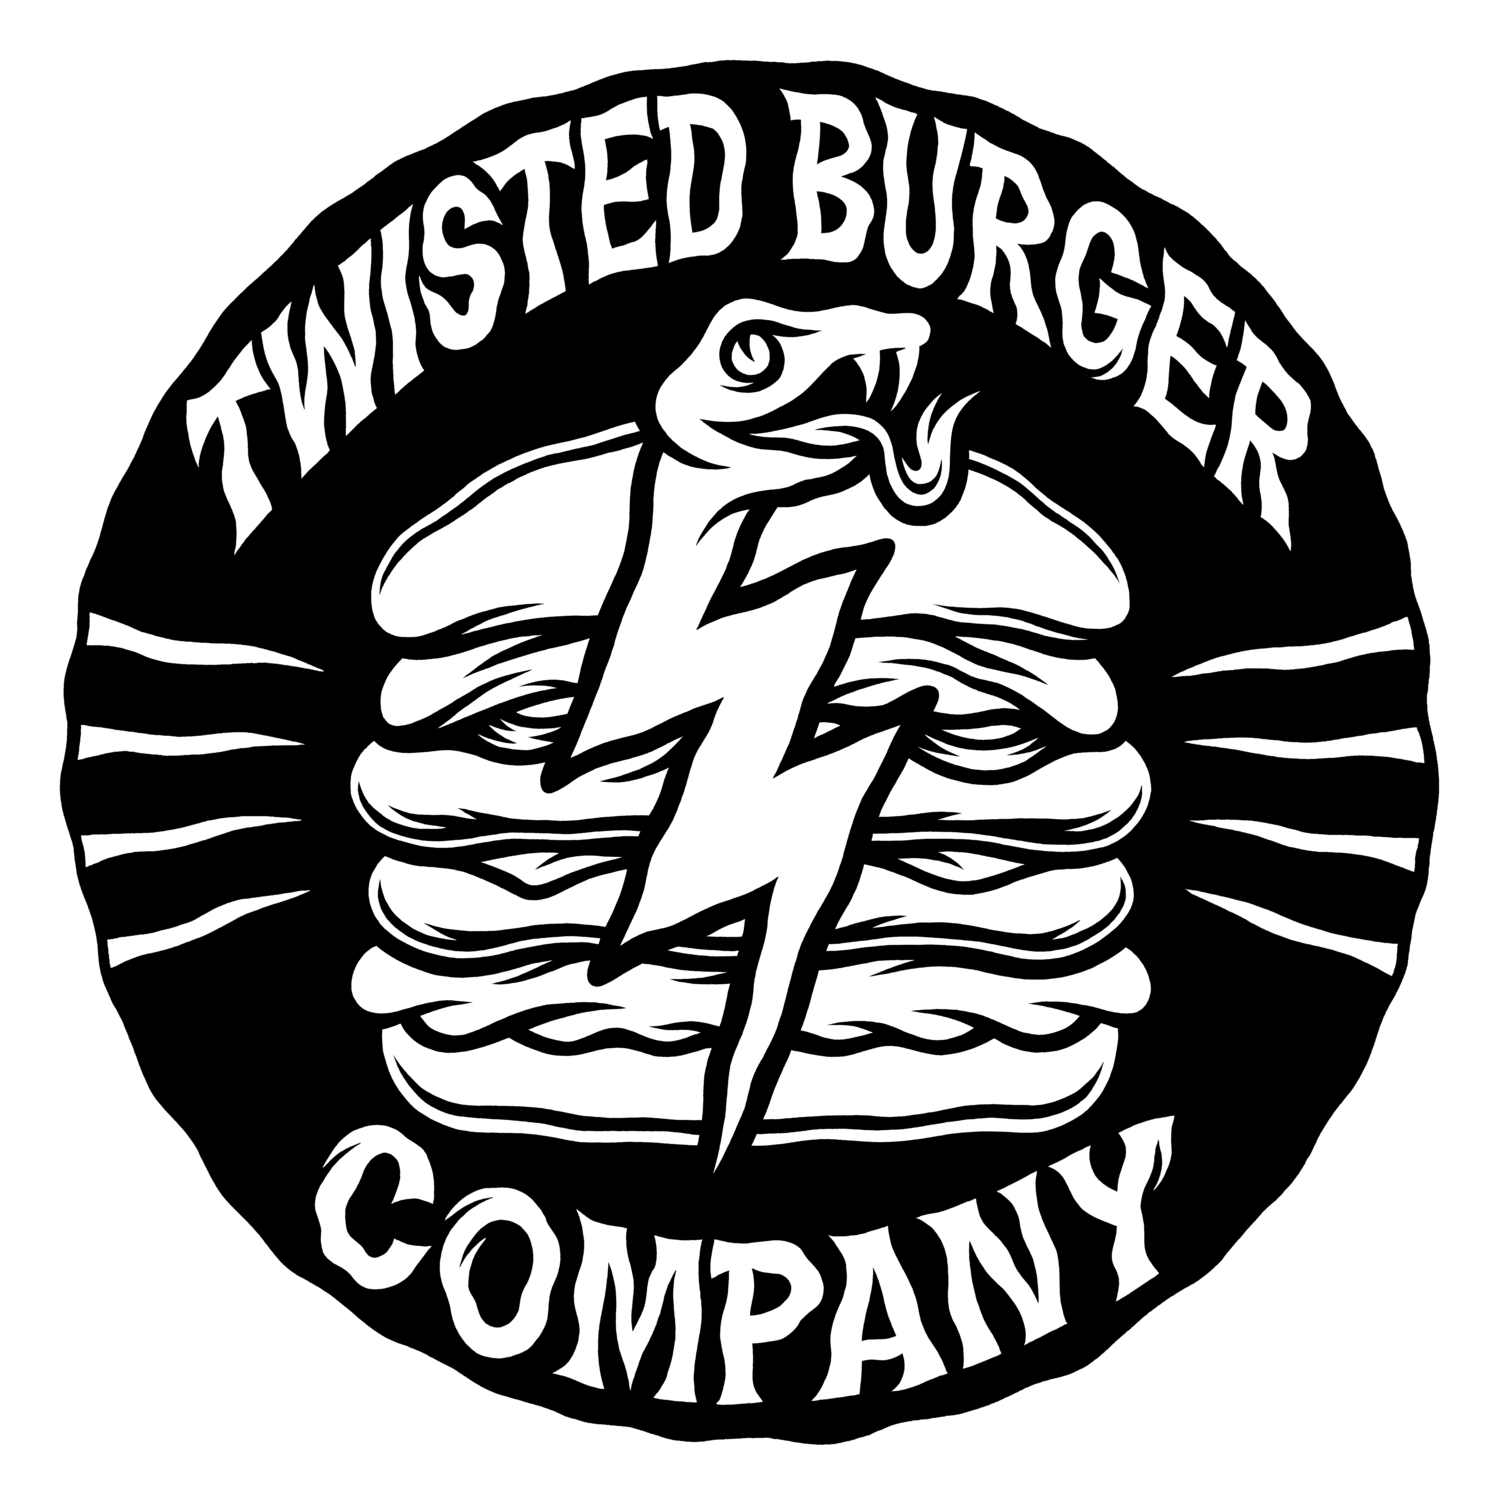 Twisted drawing. Burger company